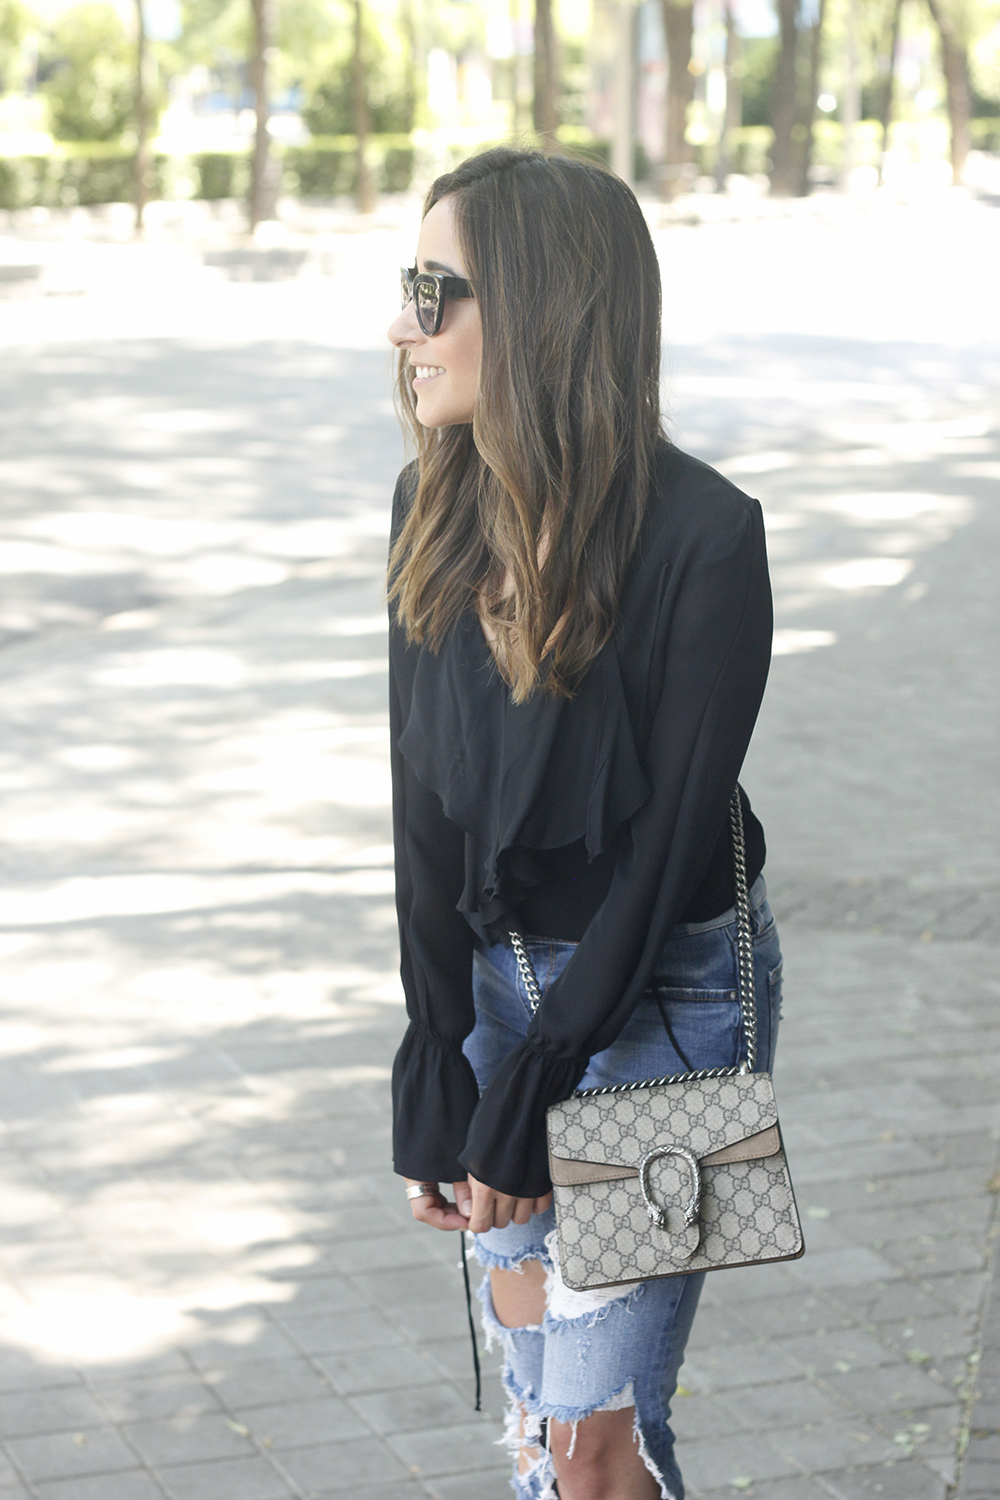 frilled shirt ripped jeans black heels gucci bag summer outfit sunnies20